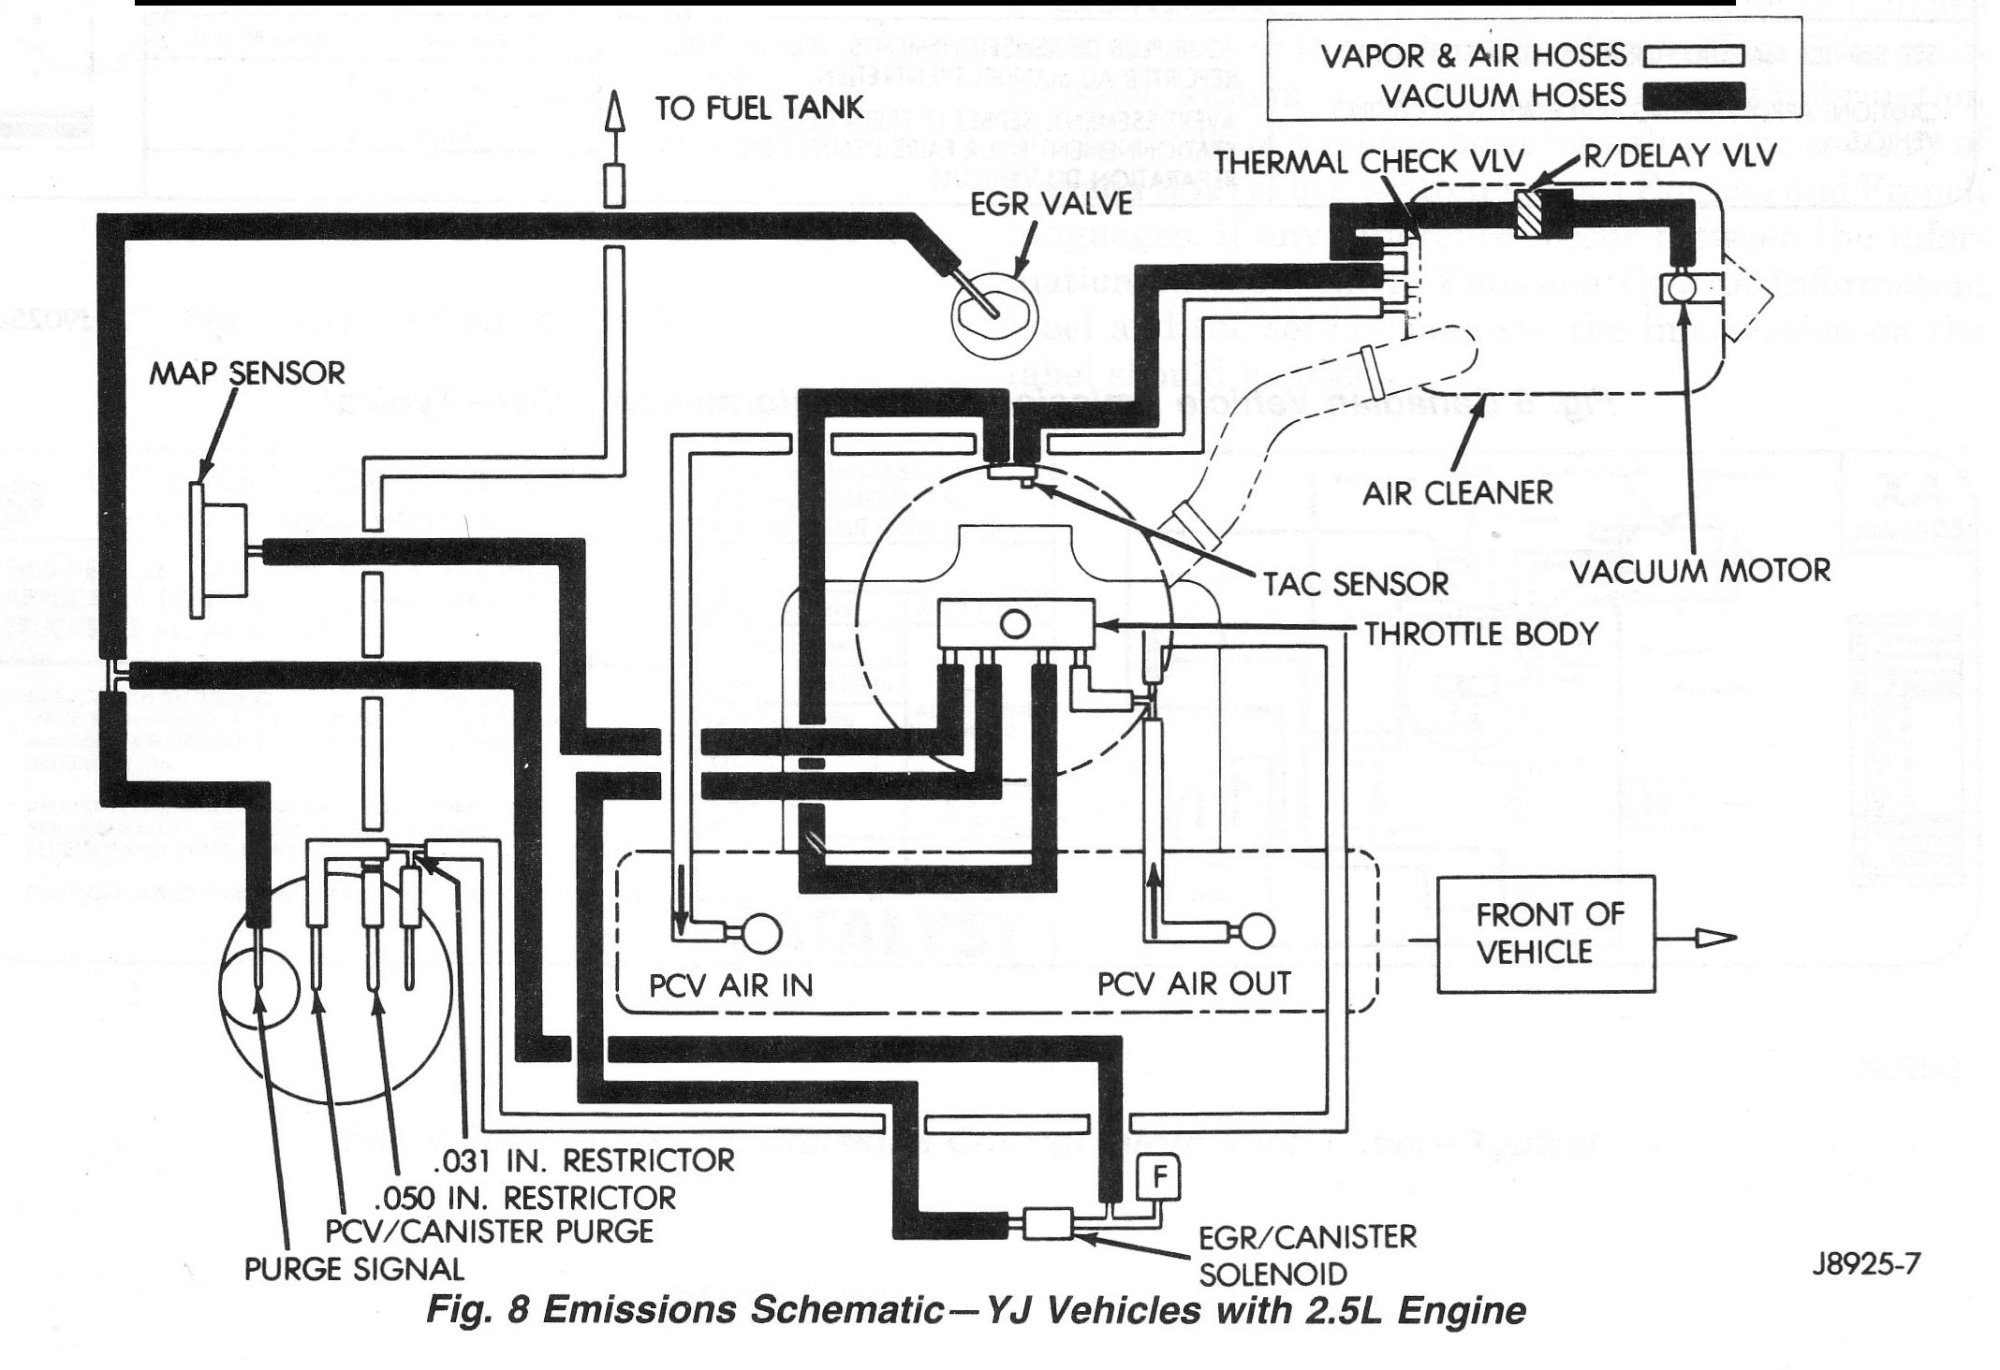 hight resolution of 1990 jeep vacuum diagram wiring diagram used 1990 jeep grand wagoneer vacuum diagram 1990 jeep vacuum diagram